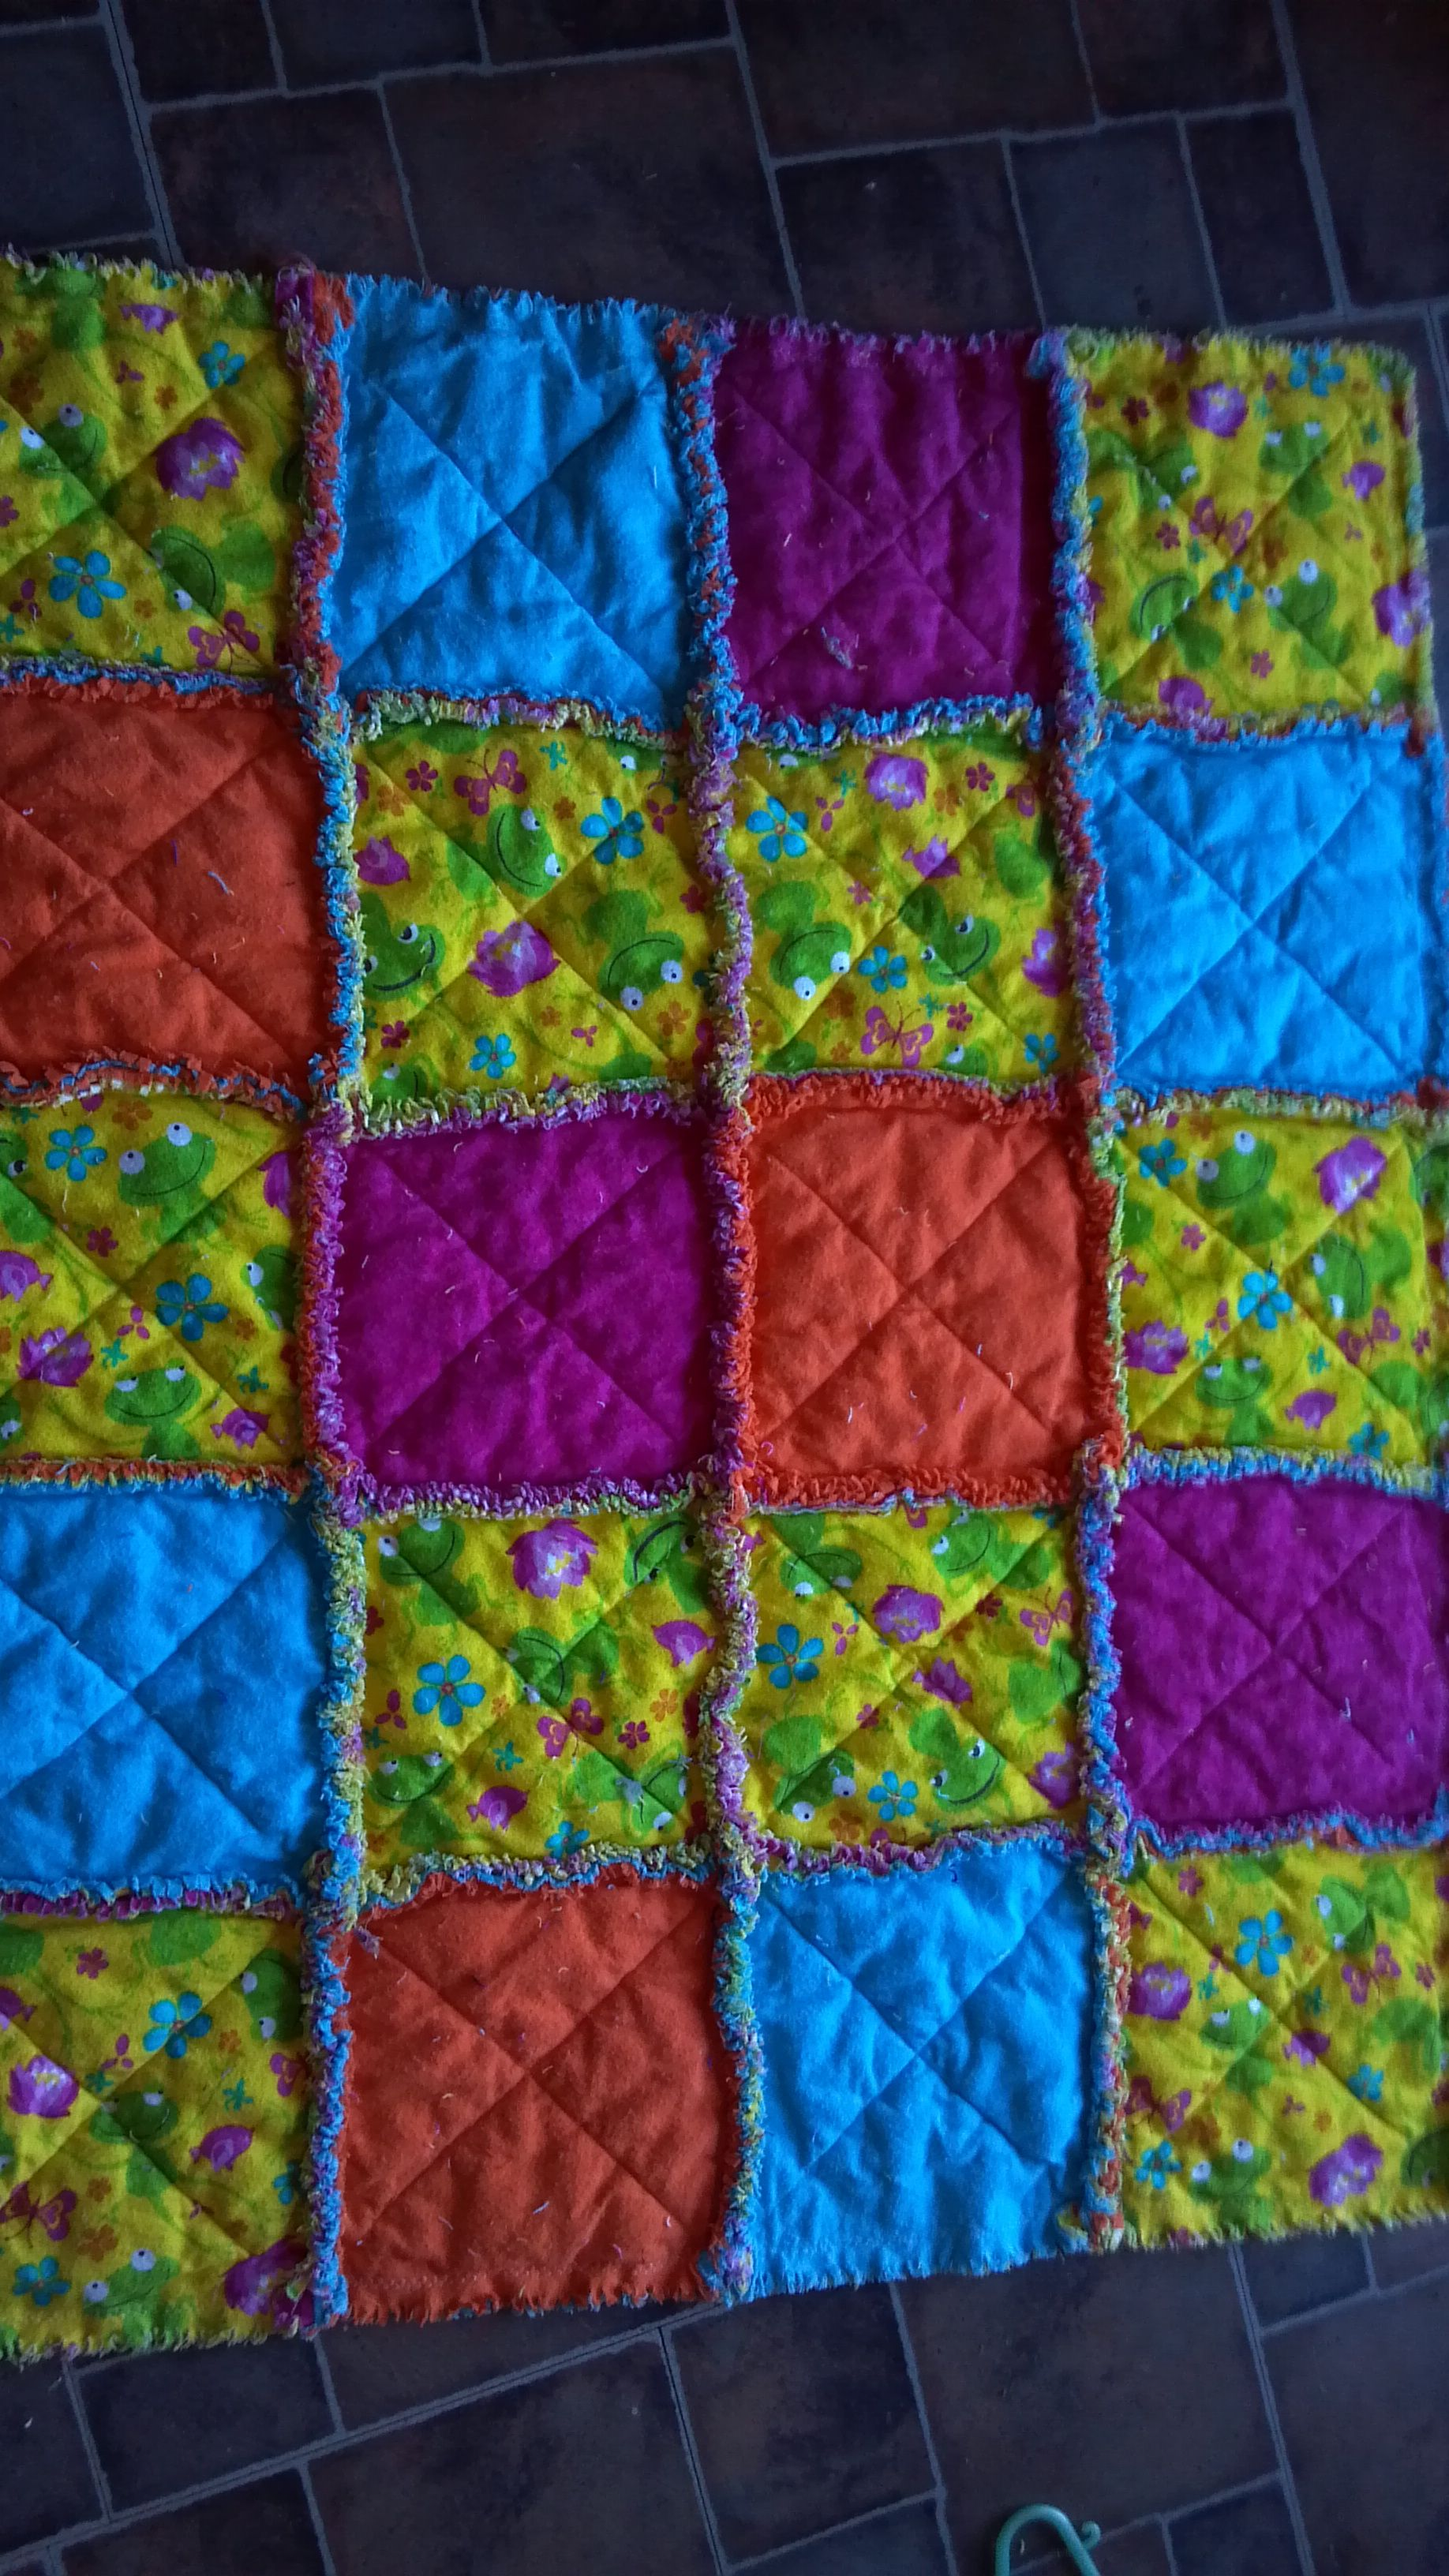 Rag Quilt Color Ideas : flannel rag quilt quilting Ideas and favs Pinterest